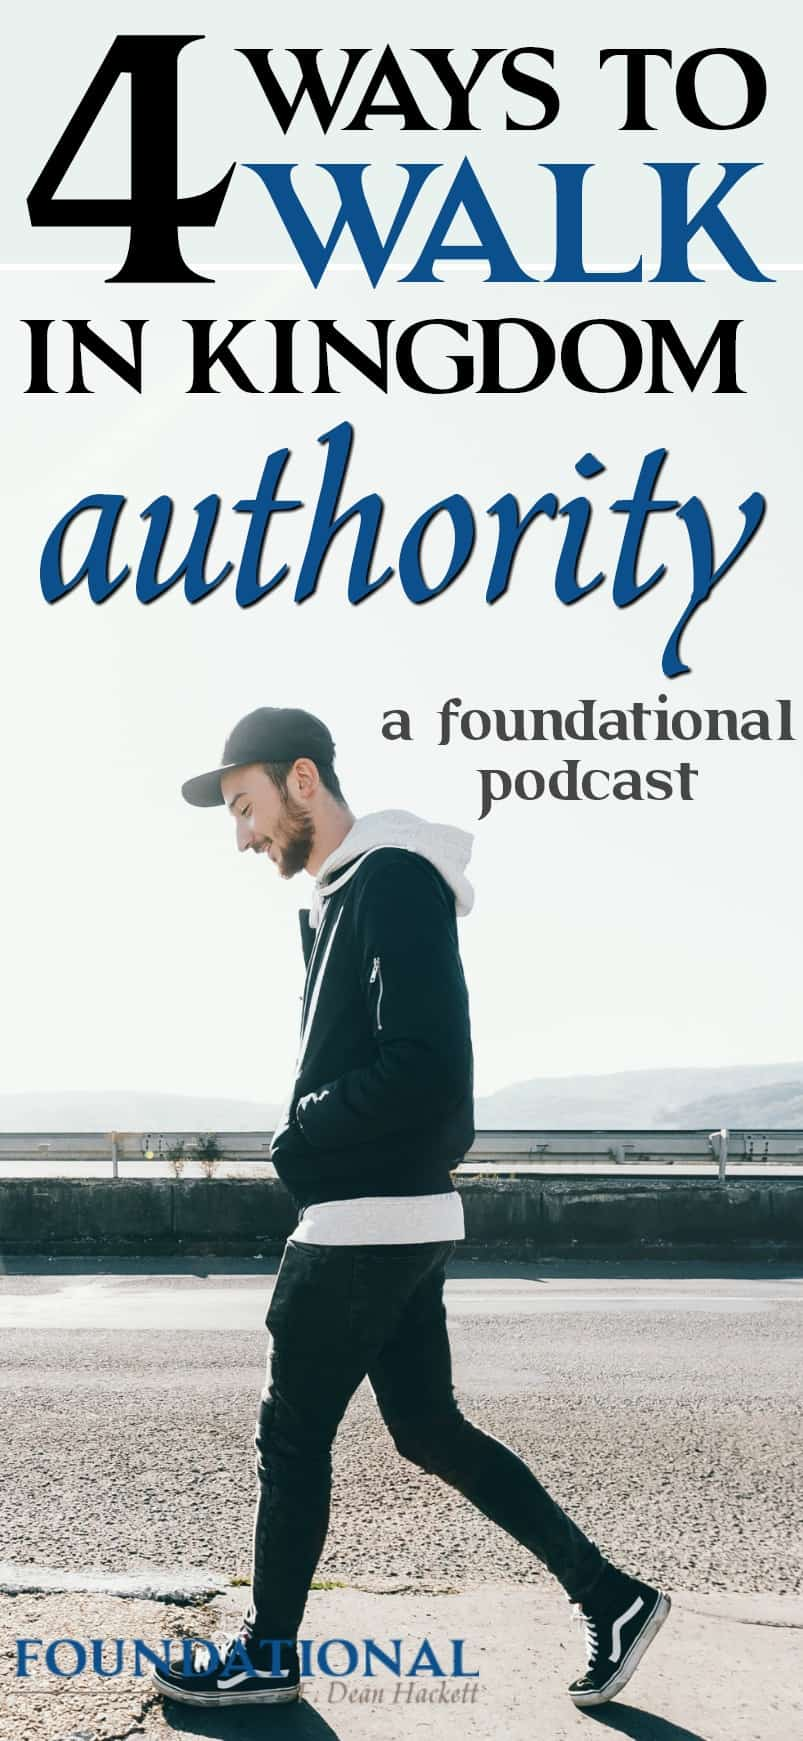 In this podcast we discover how the Lord's prayer shows us the key to kingdom authority in everyday life. | Foundational | F. Dean Hackett | Christianity | Christian living | Christian blog | Christian faith | Spiritual Warfare | #christianblog #spiritualwarfare #christianfaith #christianliving #spiritualgrowth #warroom #Bible #God